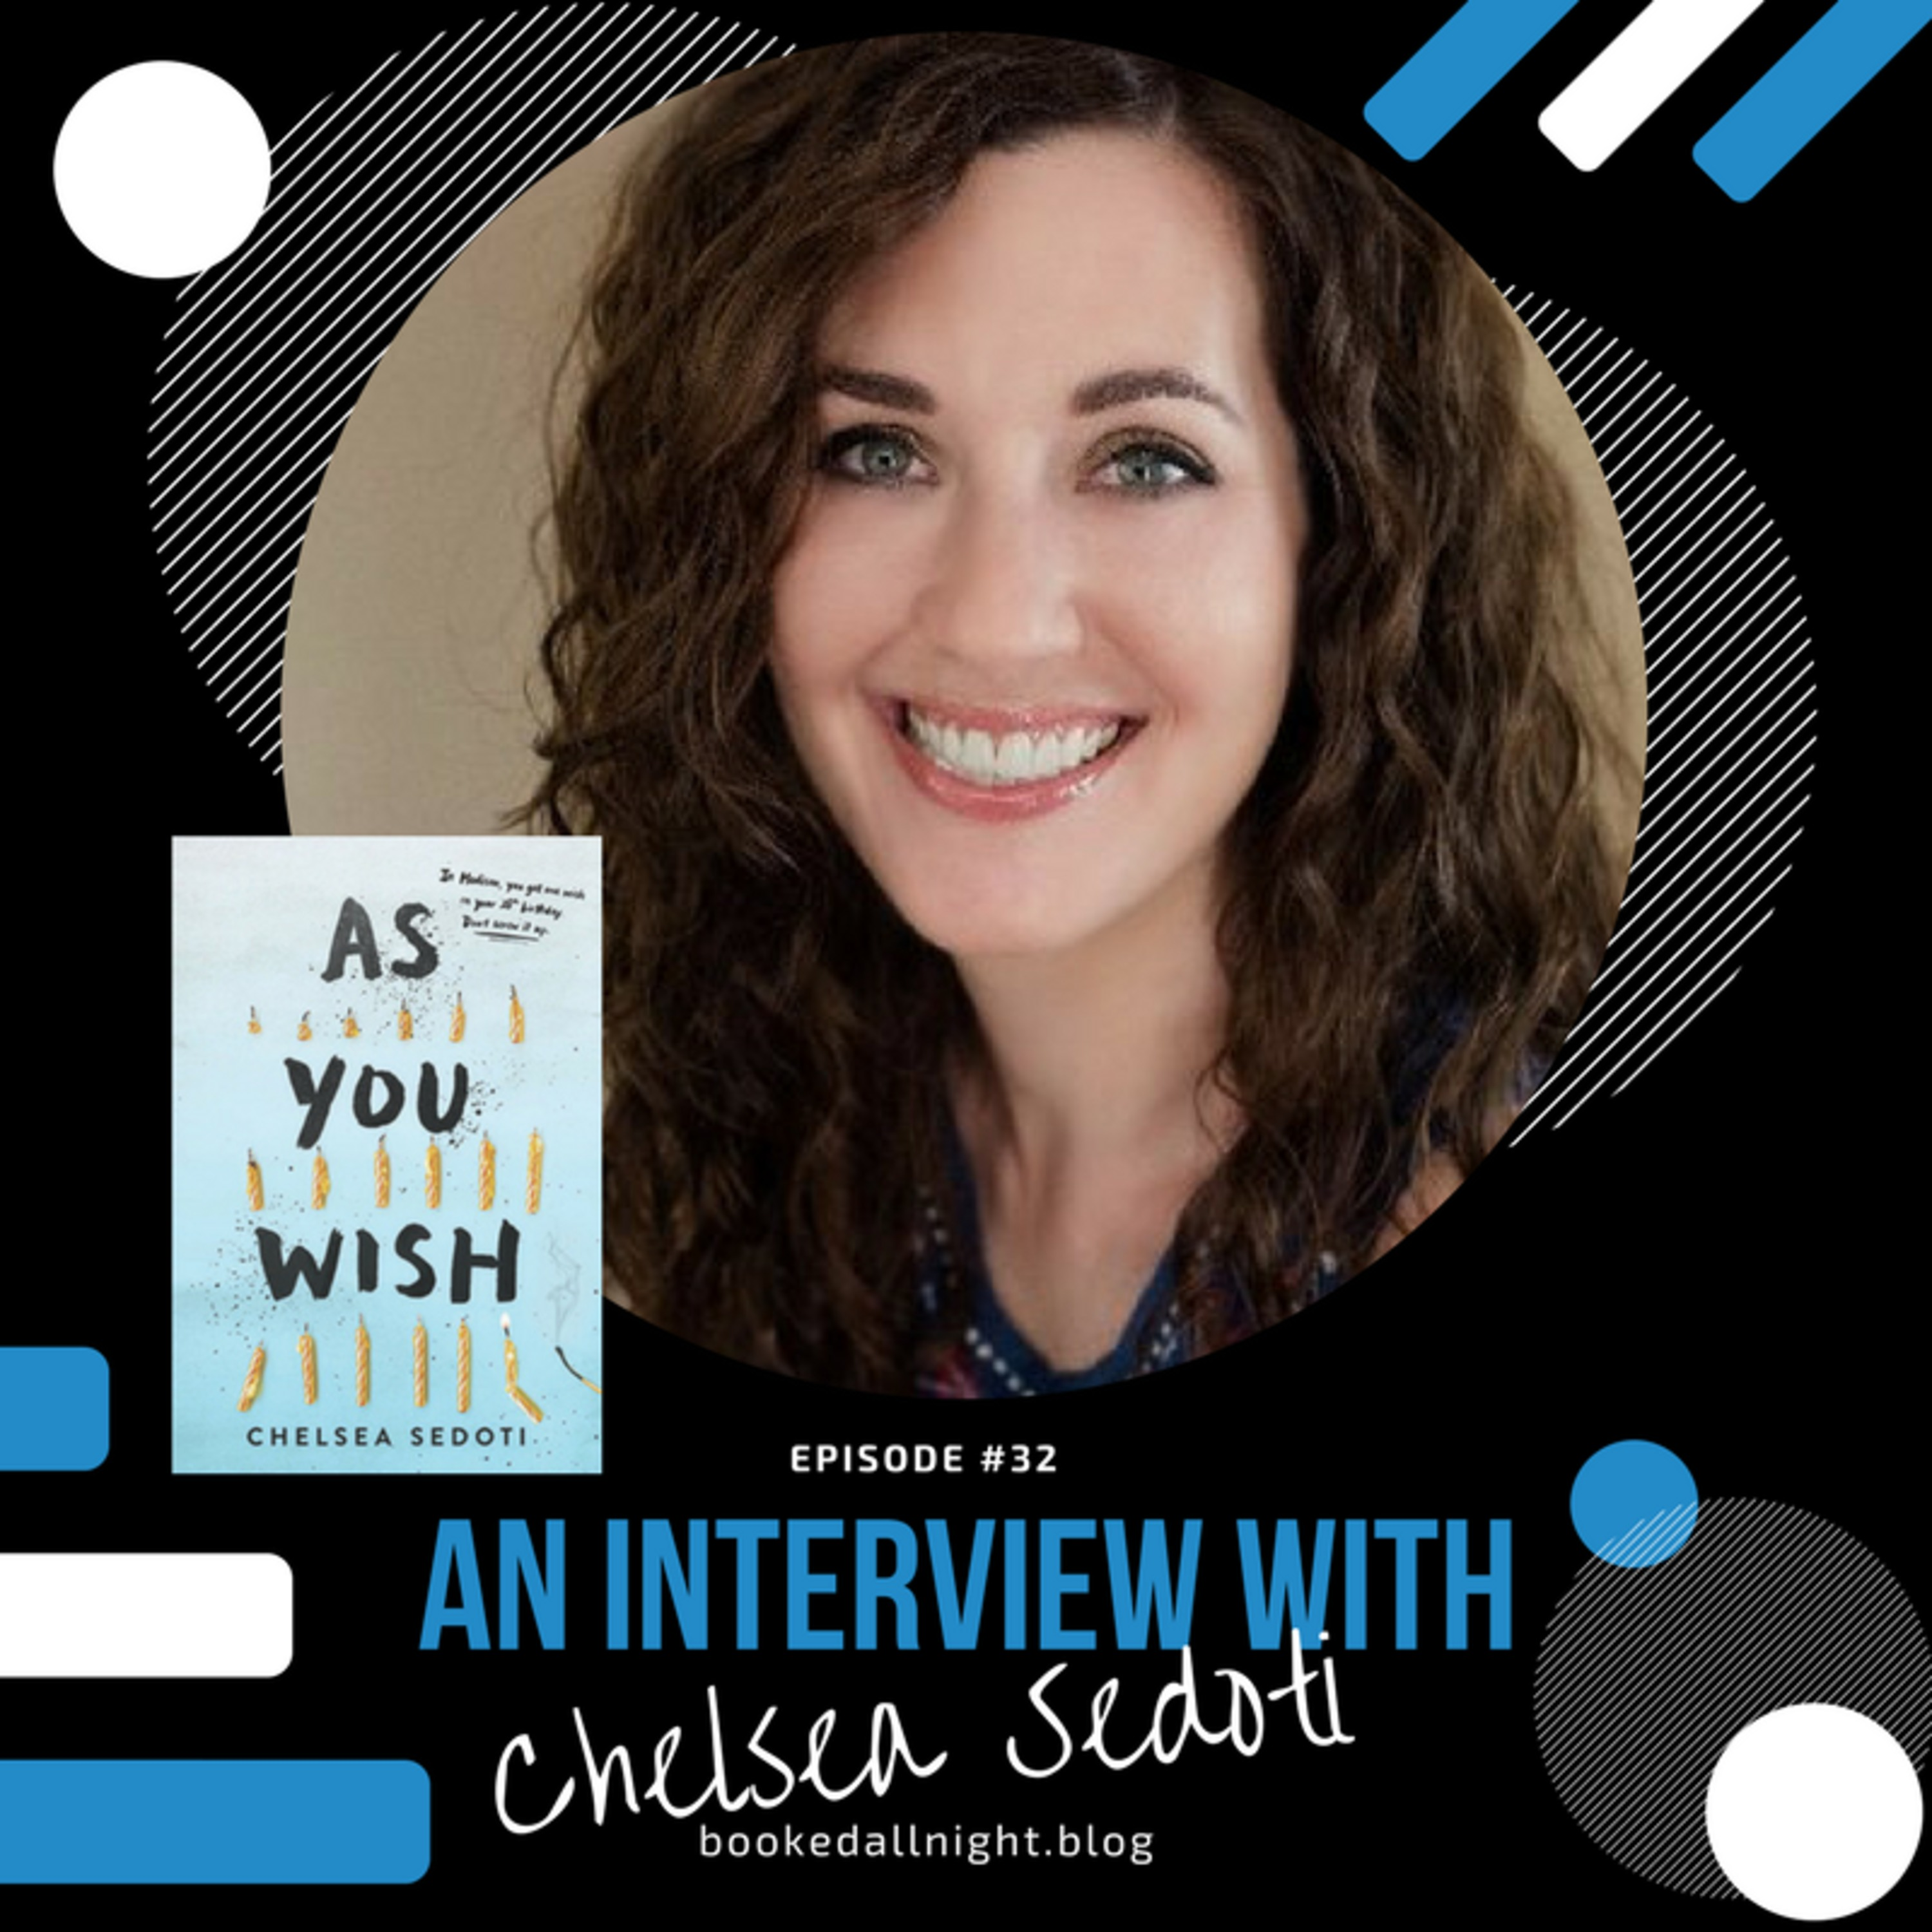 An Interview with Chelsea Sedoti